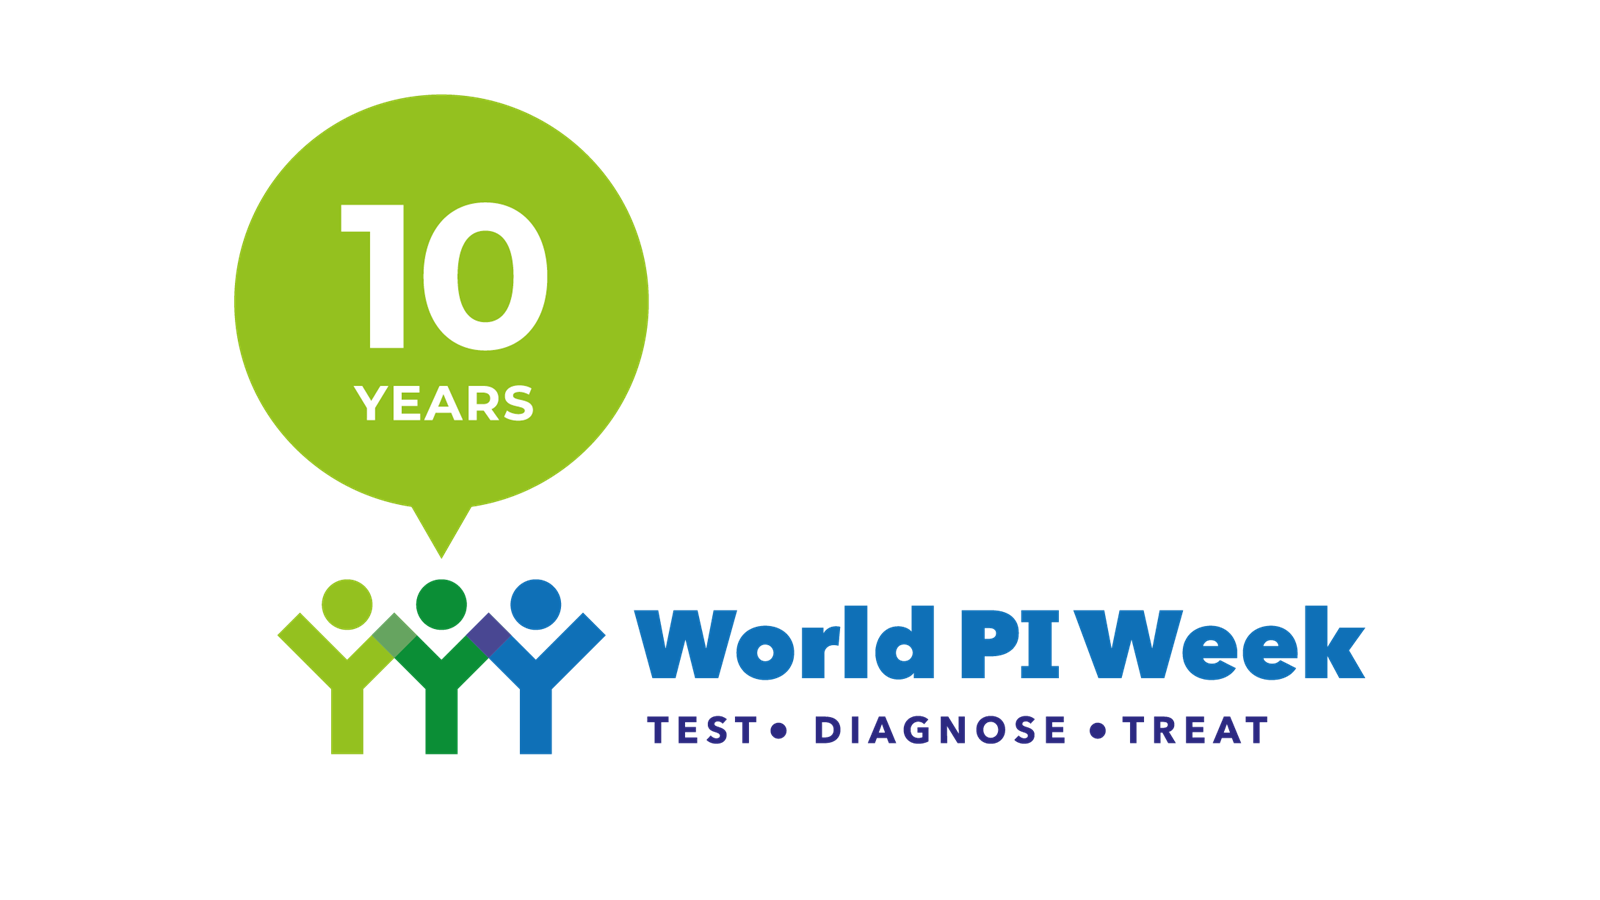 10th anniversary logo for World PI Week